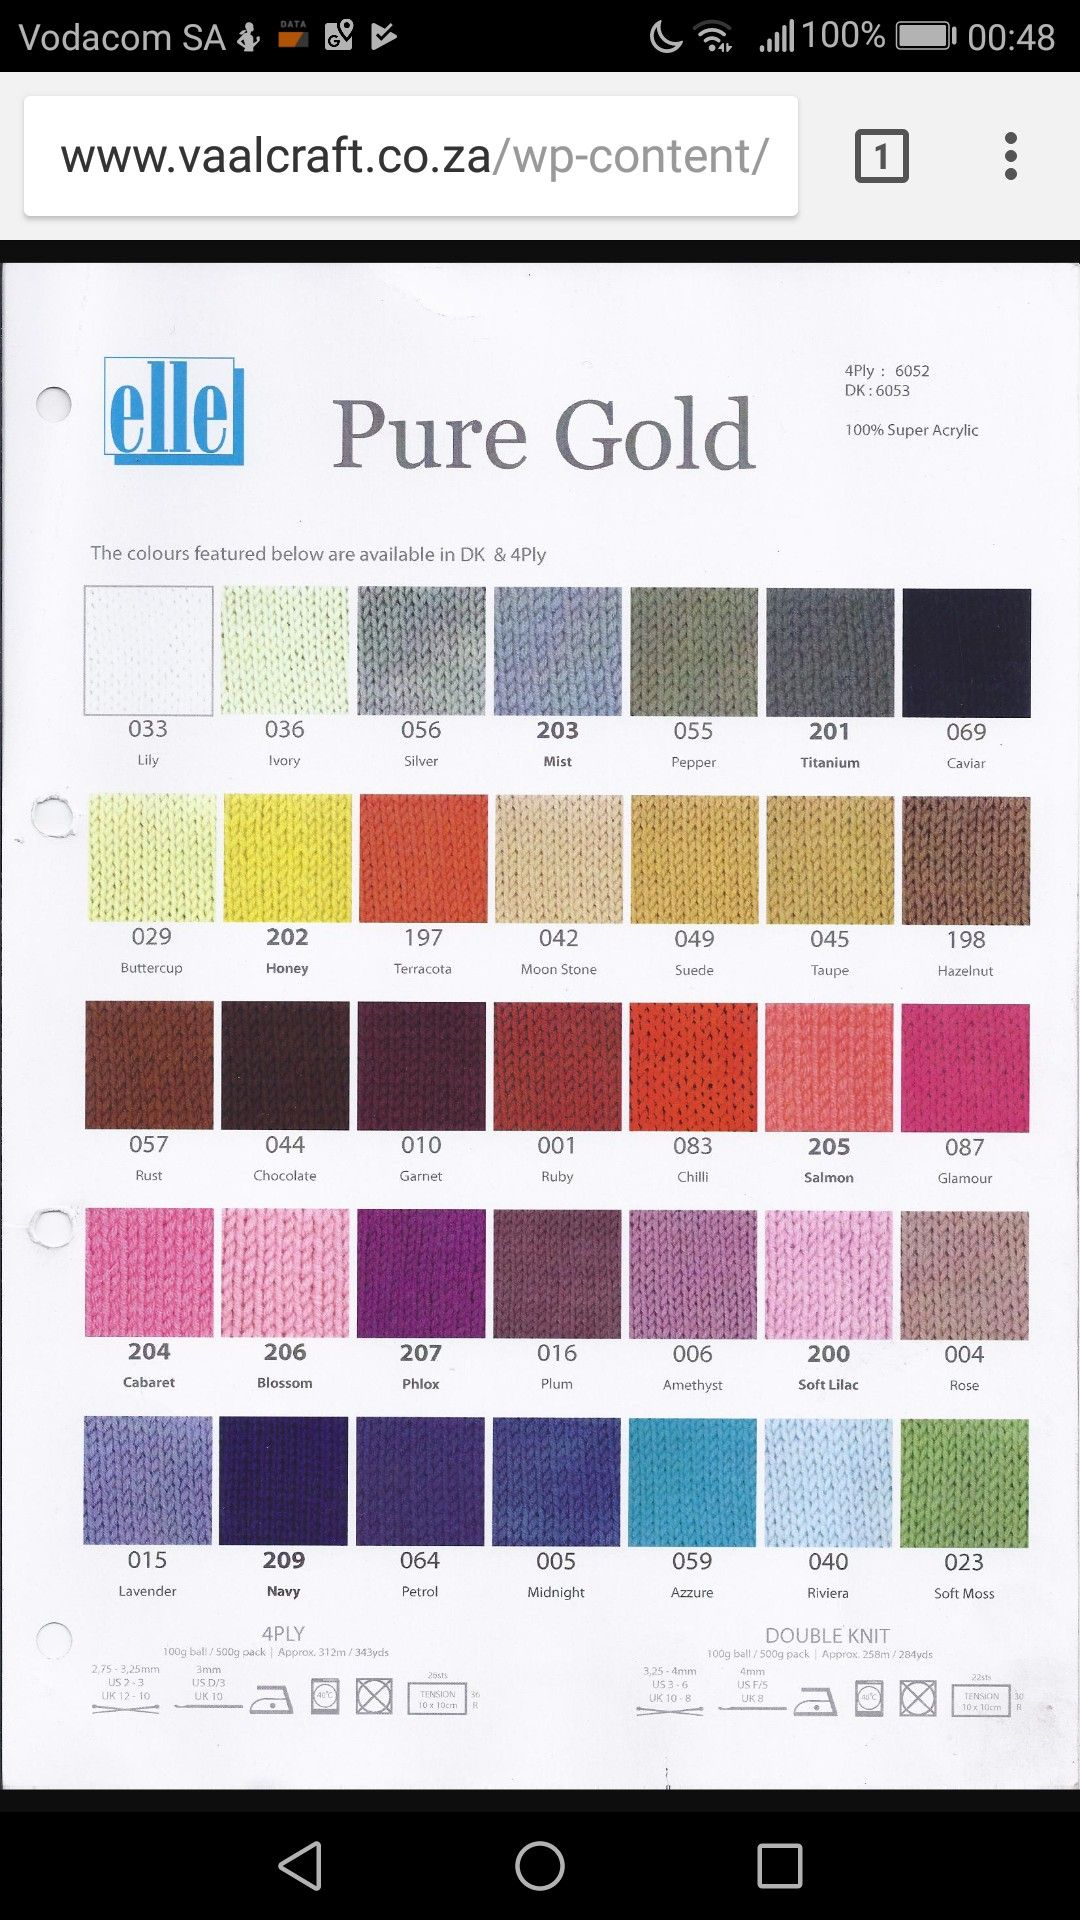 Elle pure gold yarn wool ply or dk color chart products also best beautiful images in colors rh pinterest